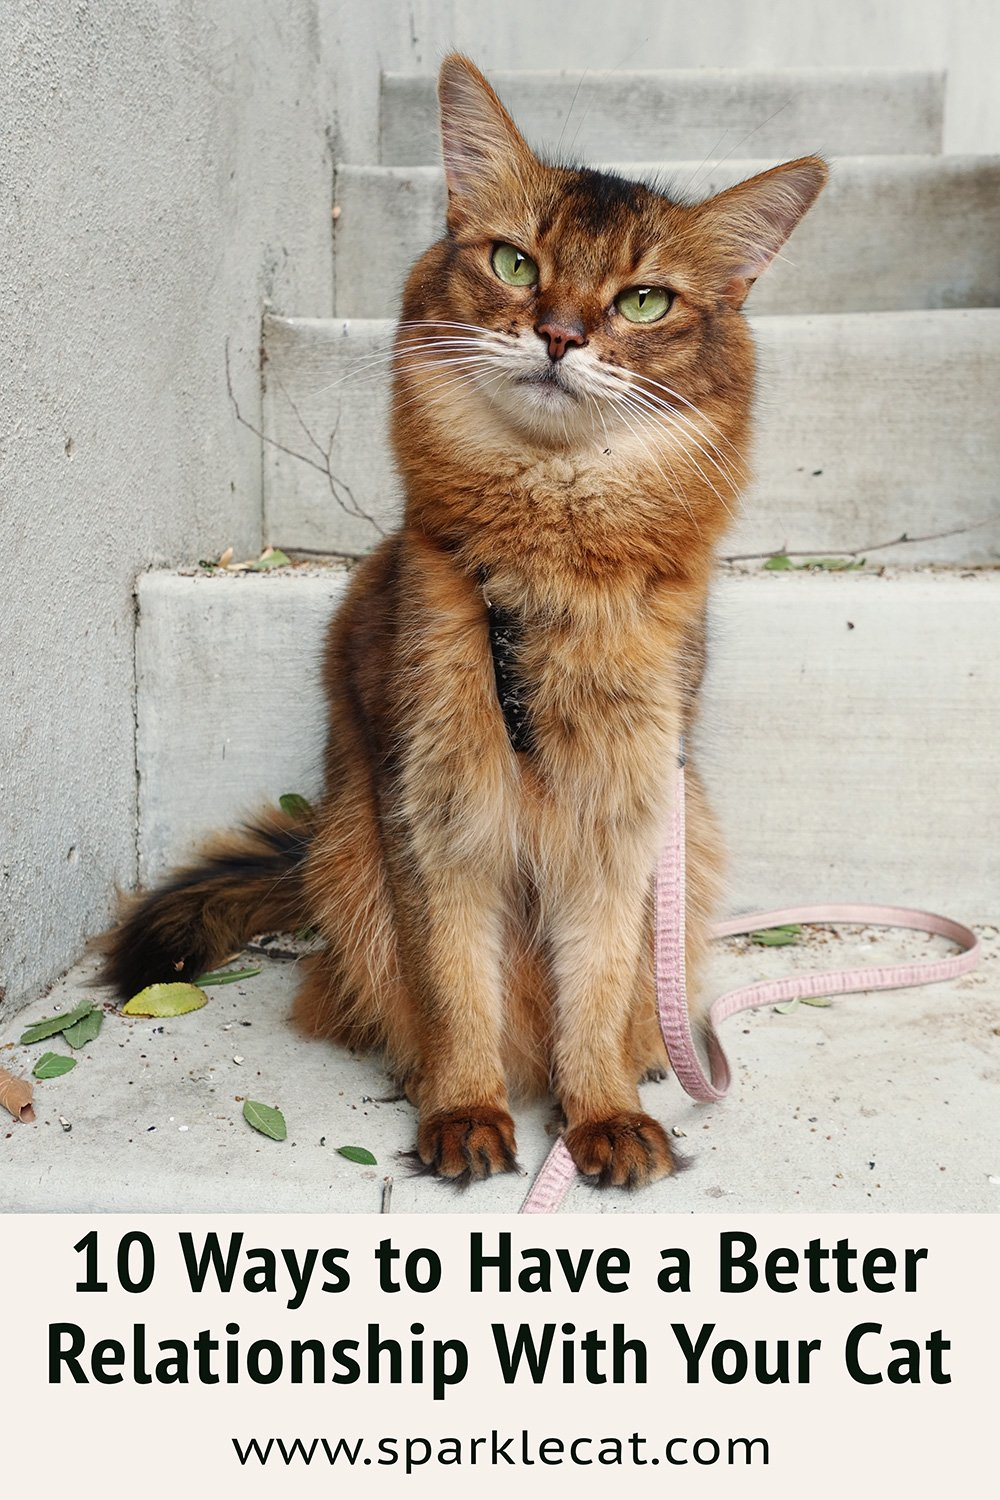 The Top 10 Ways to Have a Better Relationship With Your Cat